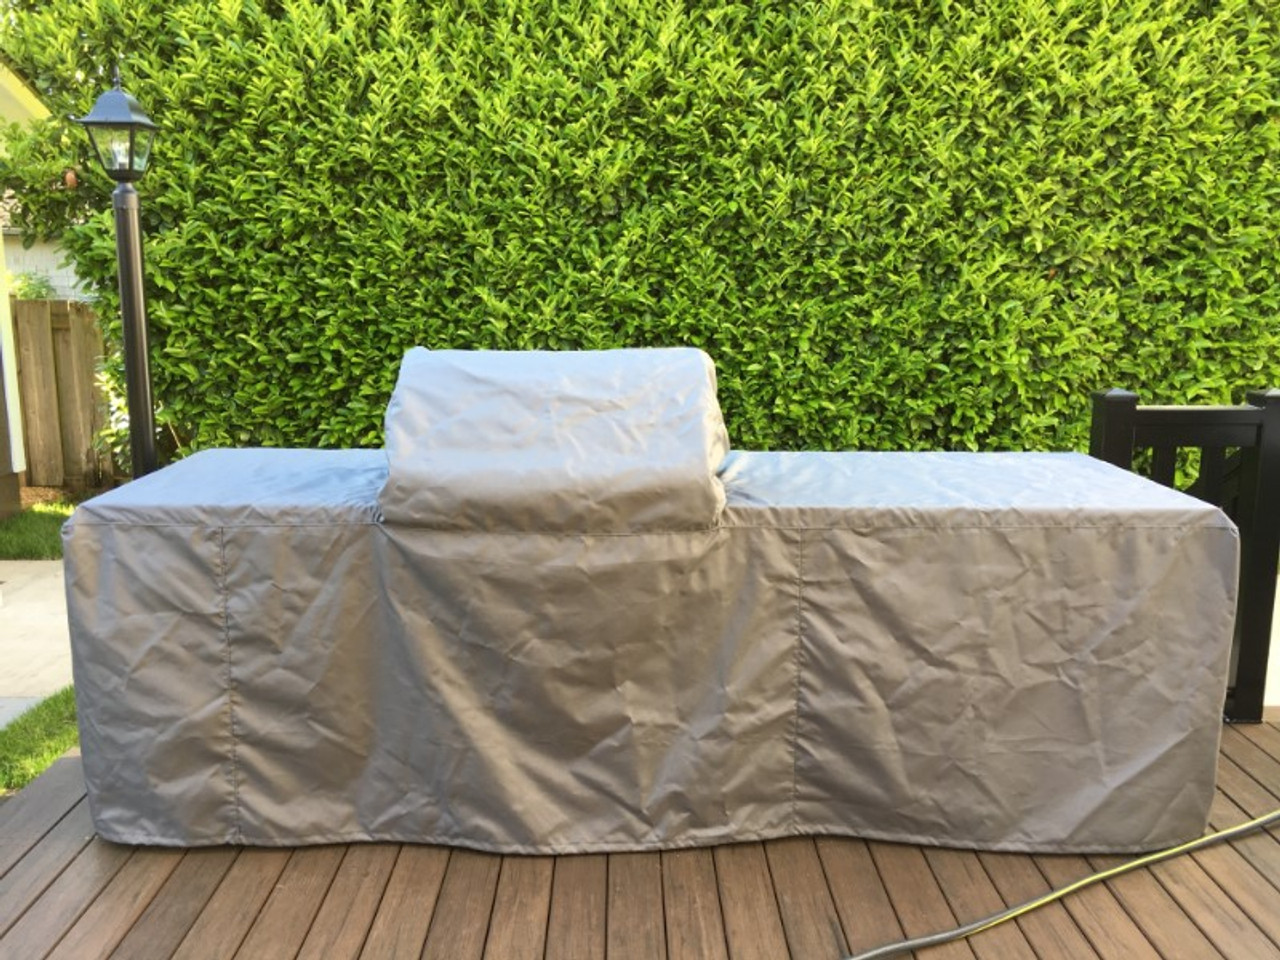 Custom Patio Kitchen Cover Outdoor Covers Canada